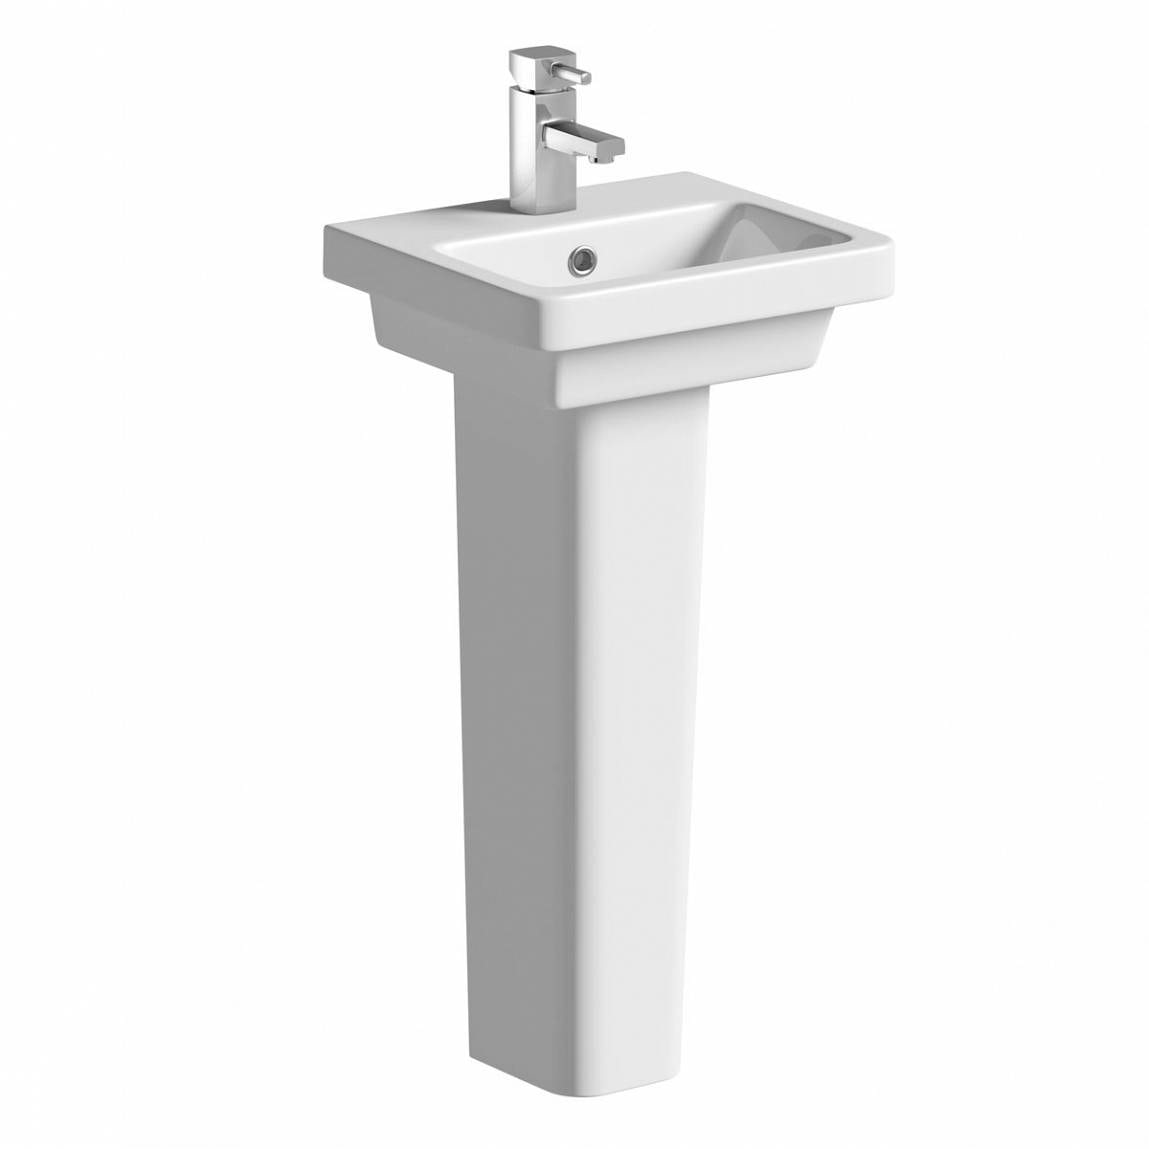 Mode Cooper 1 tap hole full pedestal basin 400mm